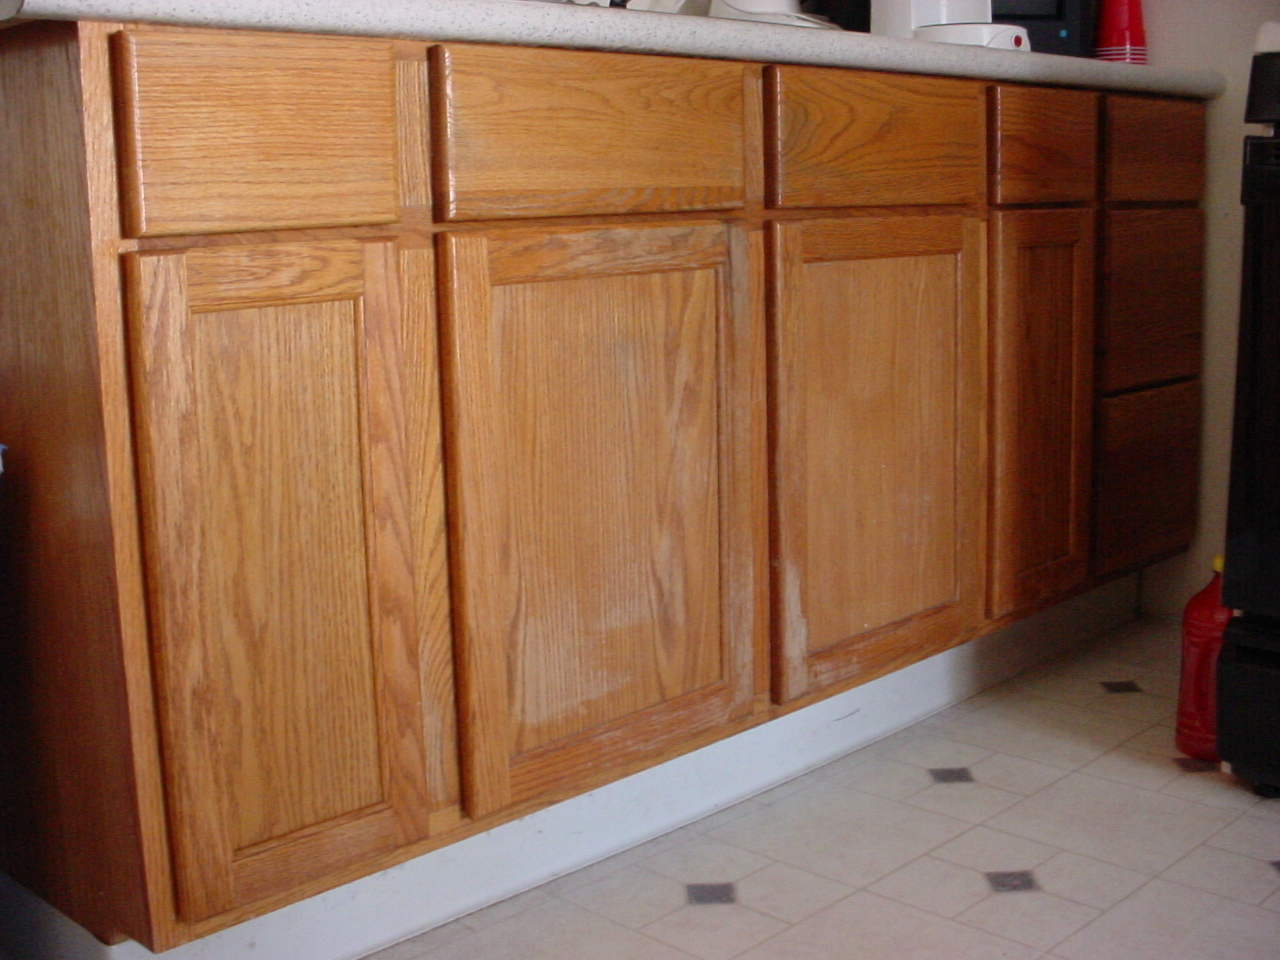 How to make your cabinets look like new kitchen cabinets for New kitchen cabinets